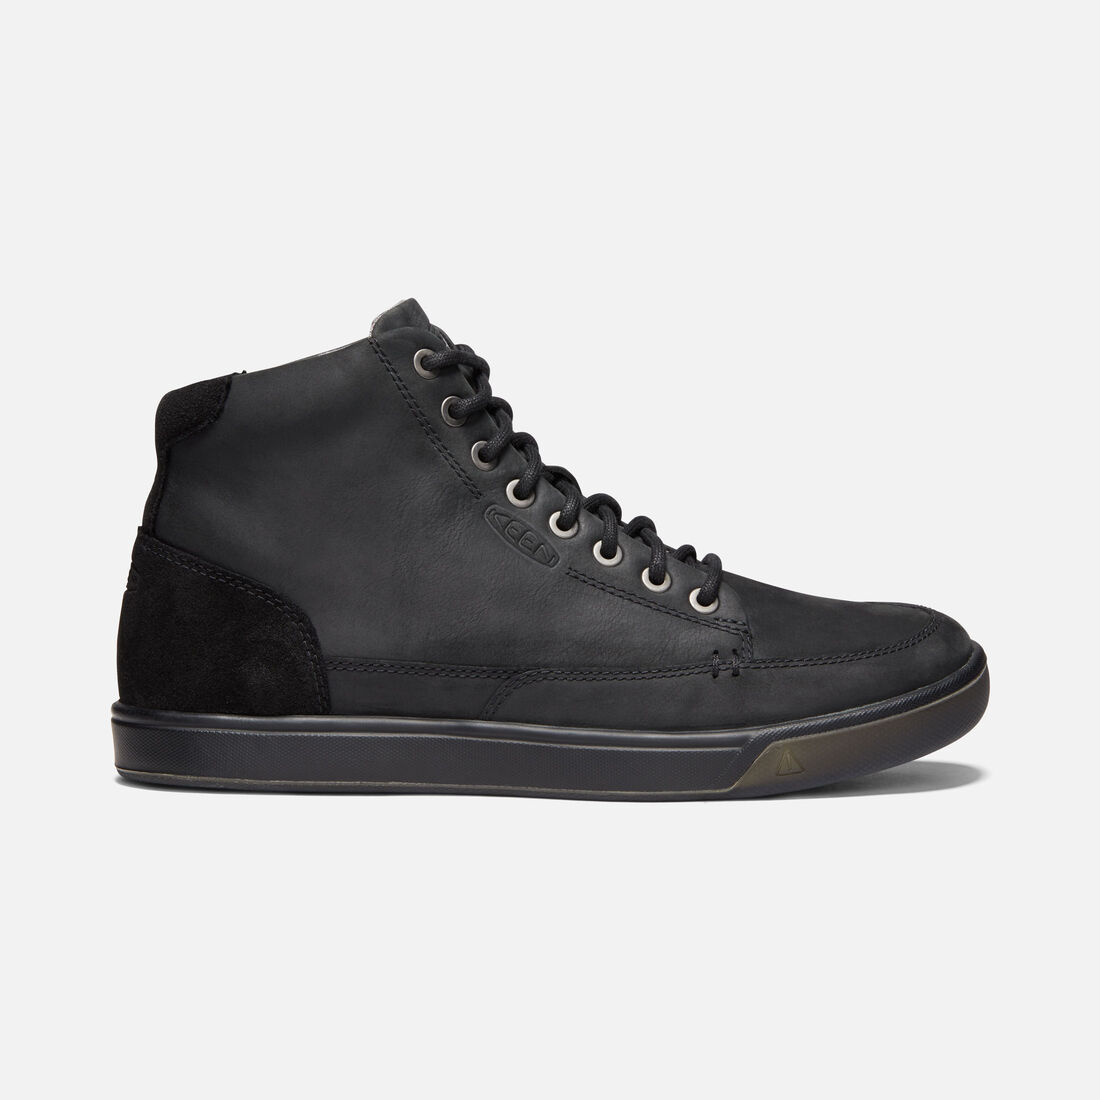 426b1d67374 Men's Glenhaven Mid Sneaker Boots - Leather Lace-Up Sneakers | KEEN ...